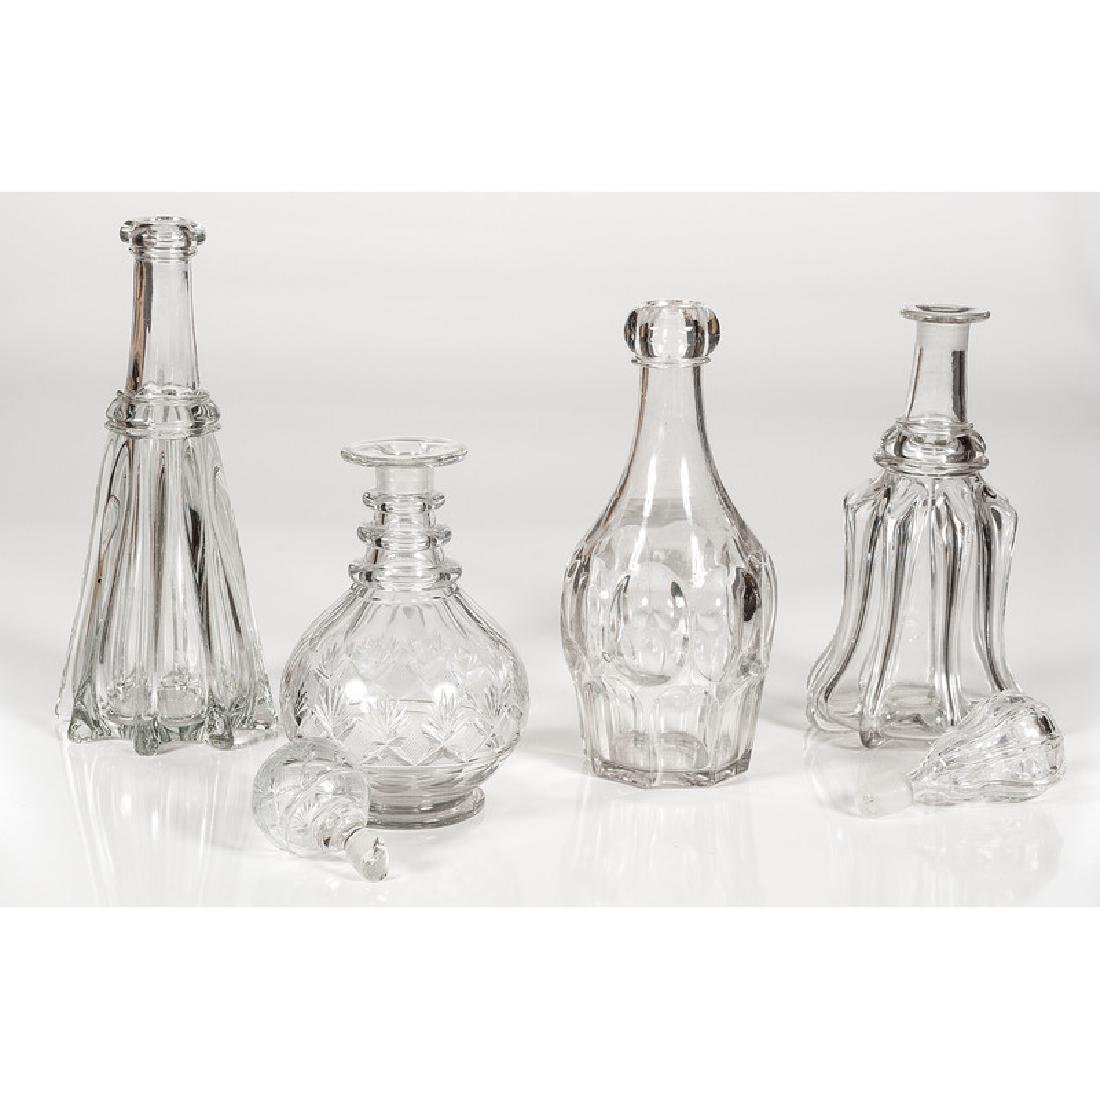 Pittsburgh Glass Decanters - 2